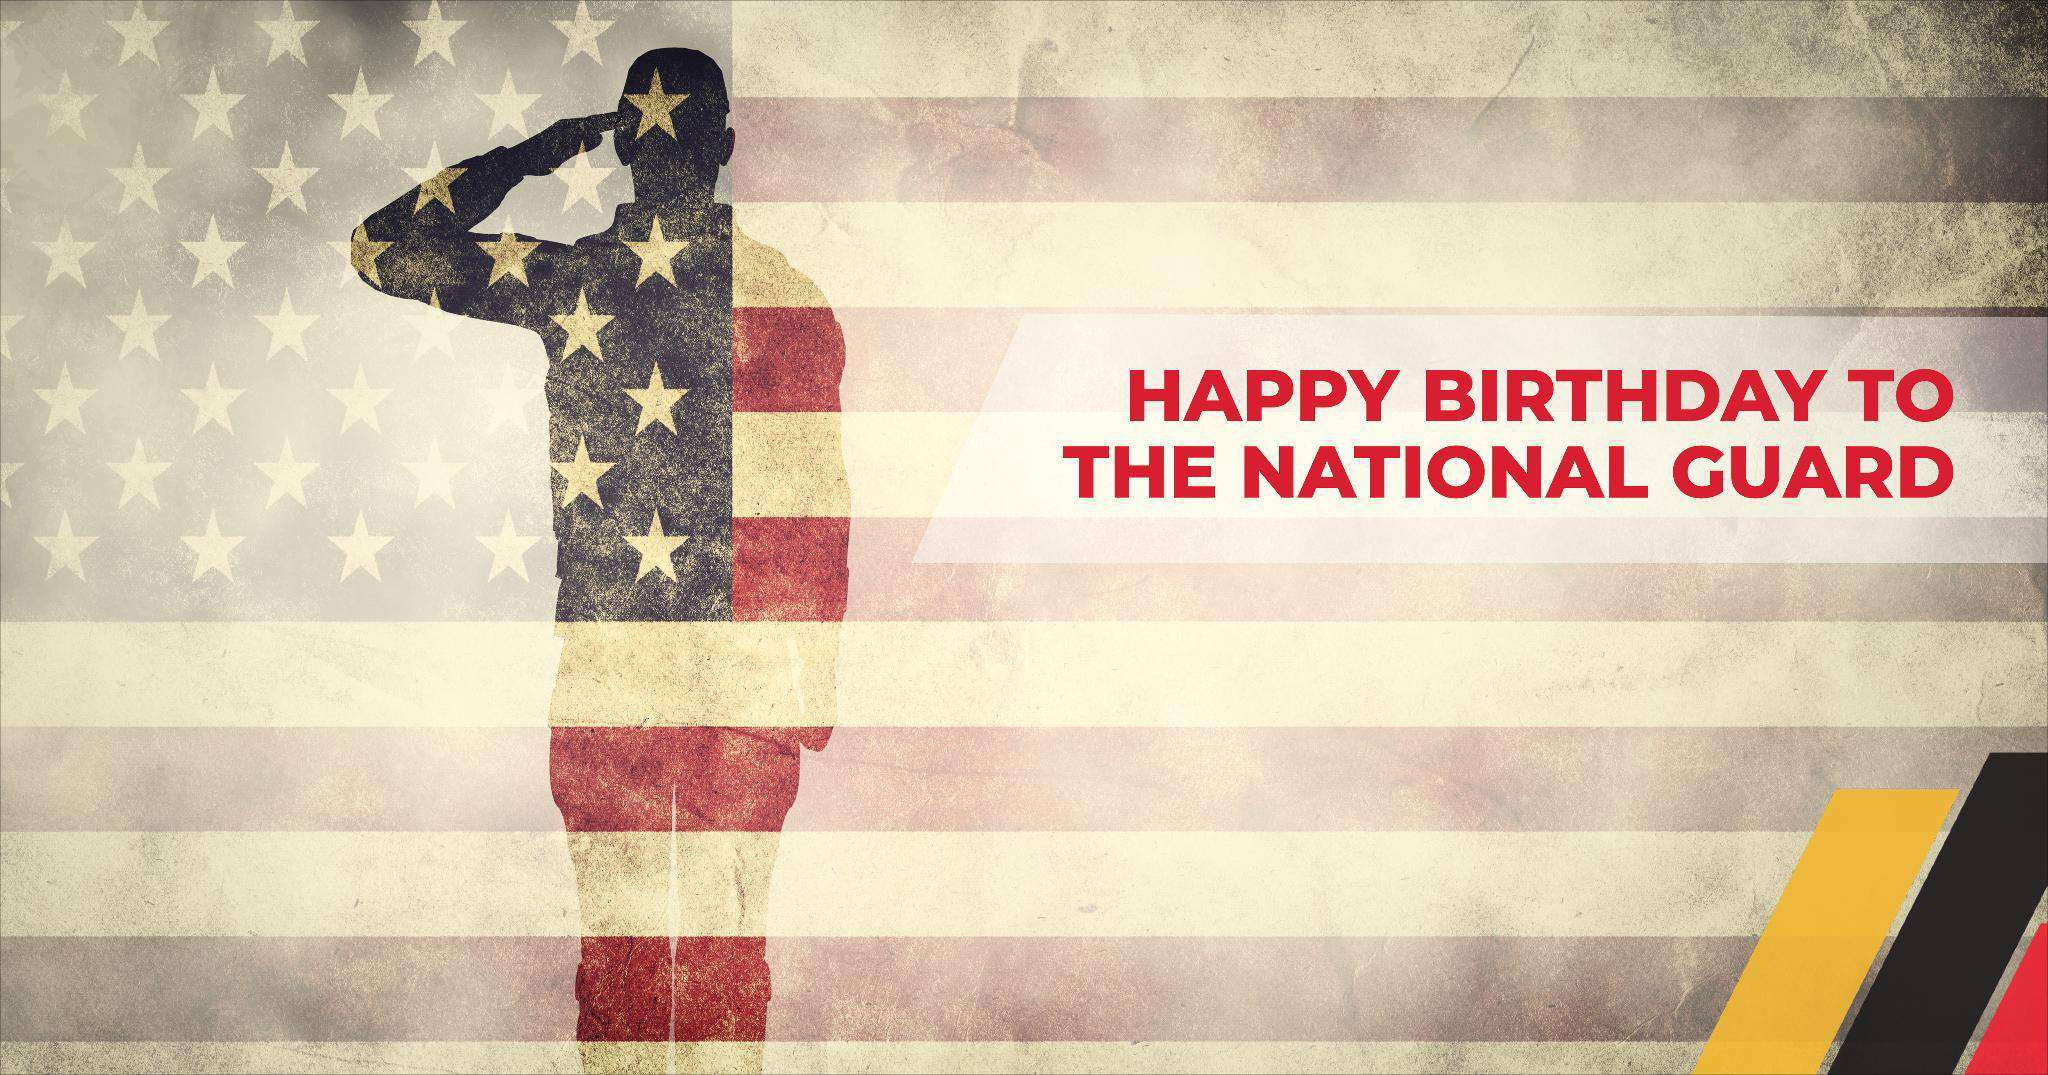 U.S. National Guard Birthday Wishes For Facebook